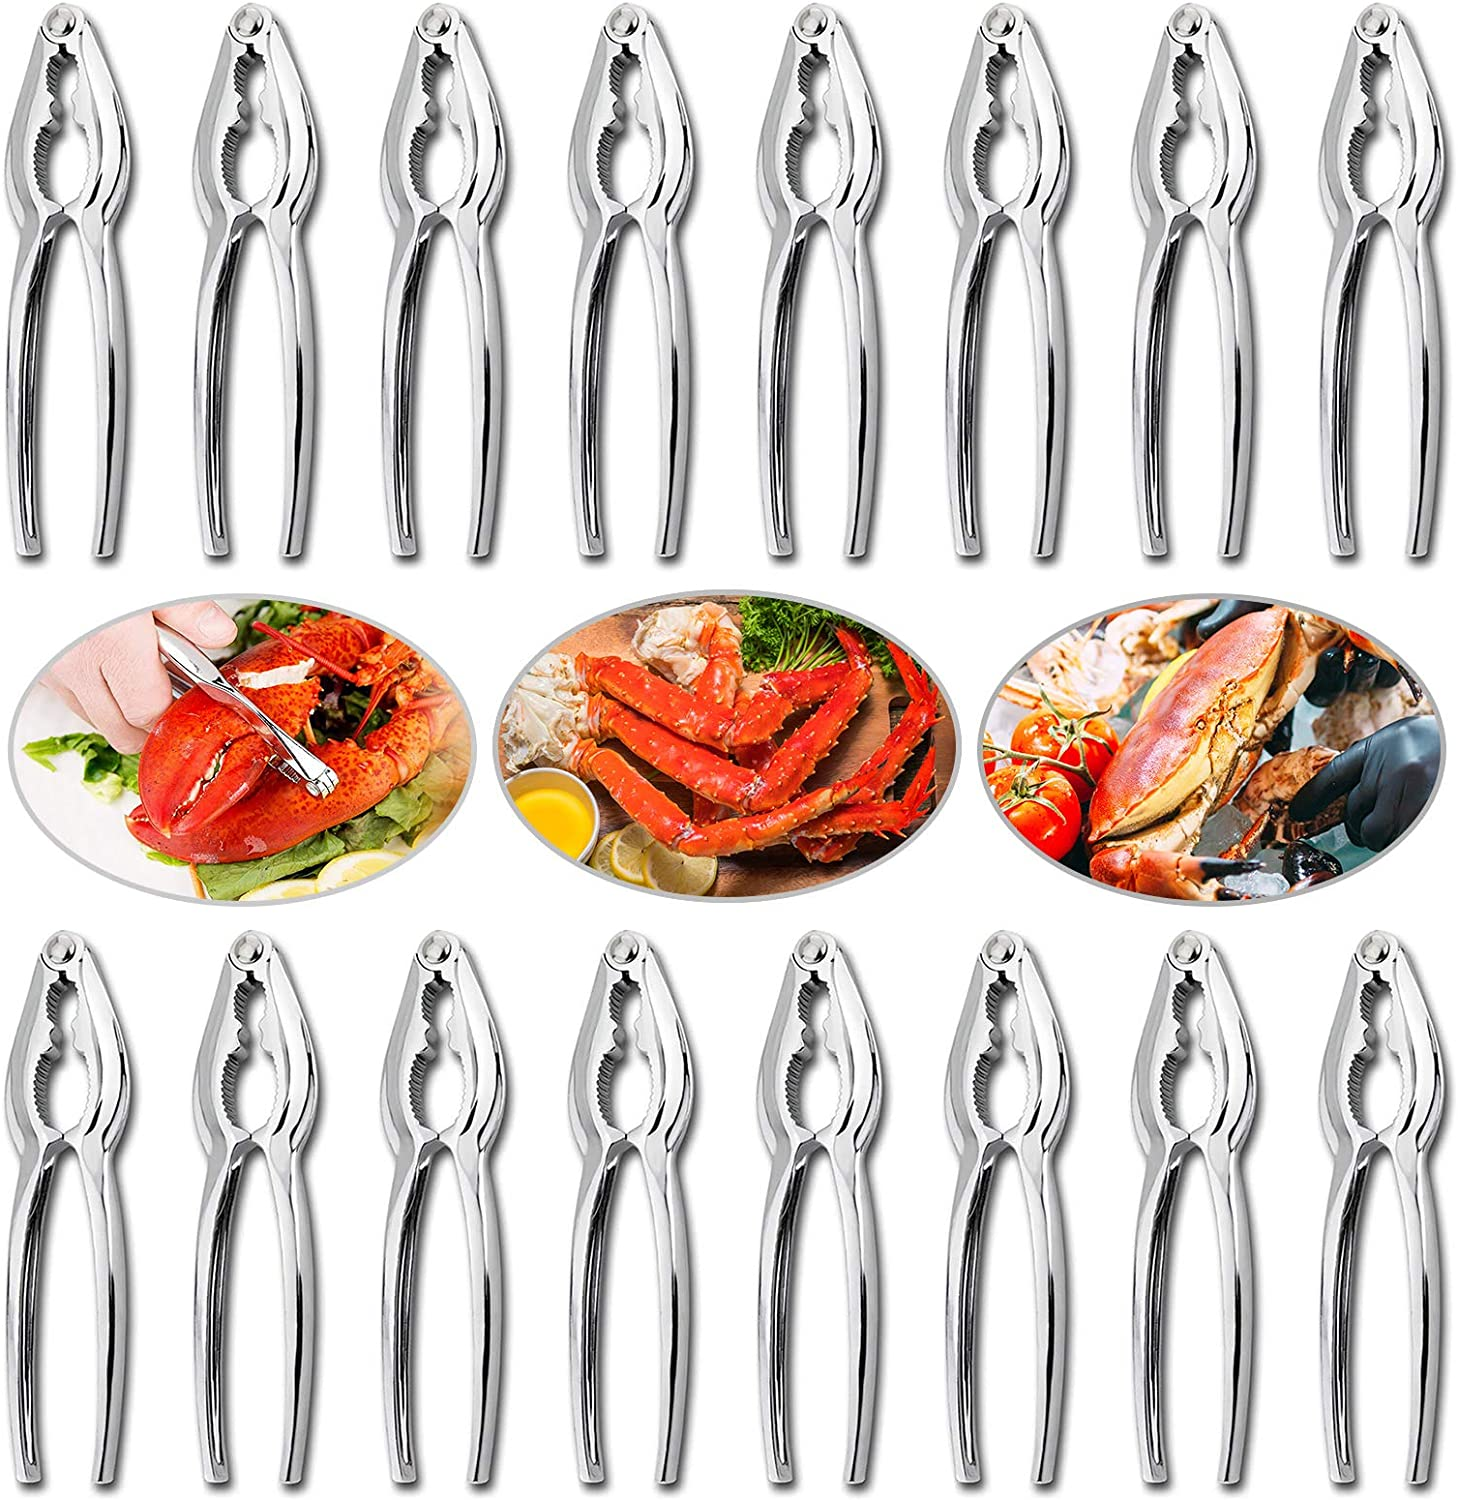 16 Pieces Crab Crackers and Tools, Seafood Tools Set Lobster Crackers Crab Crackers Sets Nut Crackers Tools